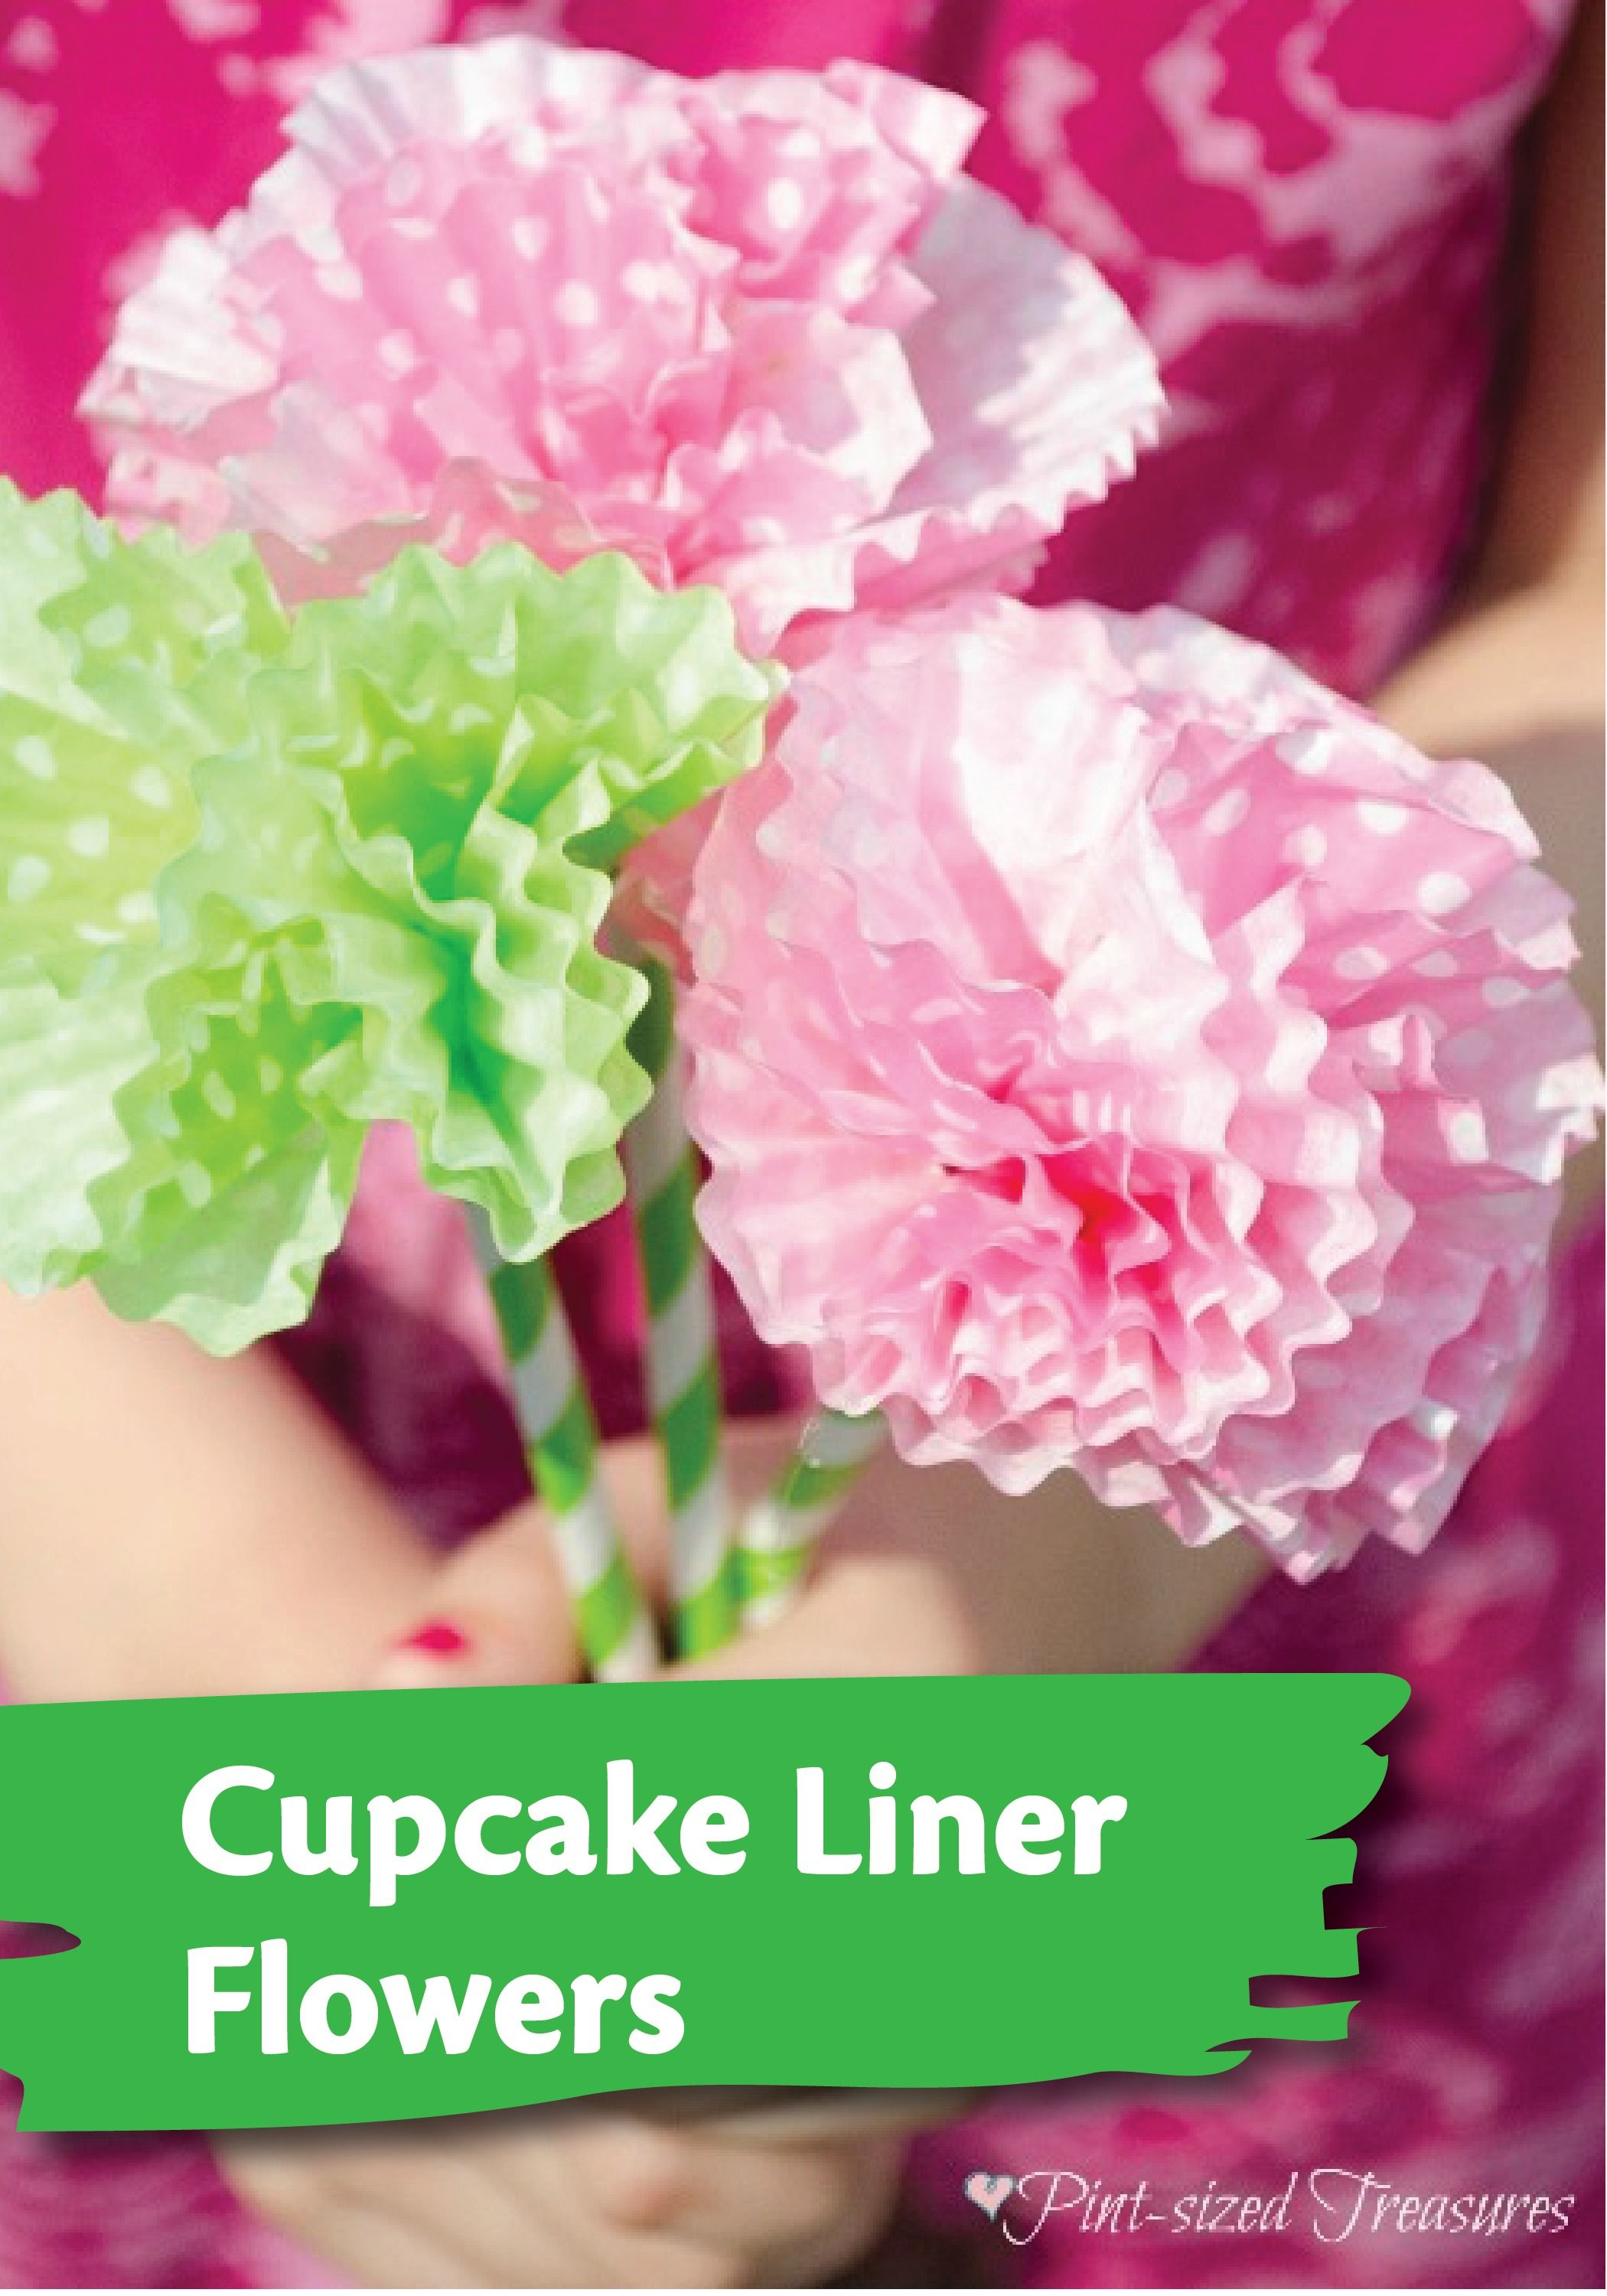 Diy paper flowers from cupcake liners cupcake liners spring diy paper flowers from cupcake liners bring the look of beautiful spring flowers indoors with this easy and fun paper flowers kids craft made with cupcake jeuxipadfo Gallery